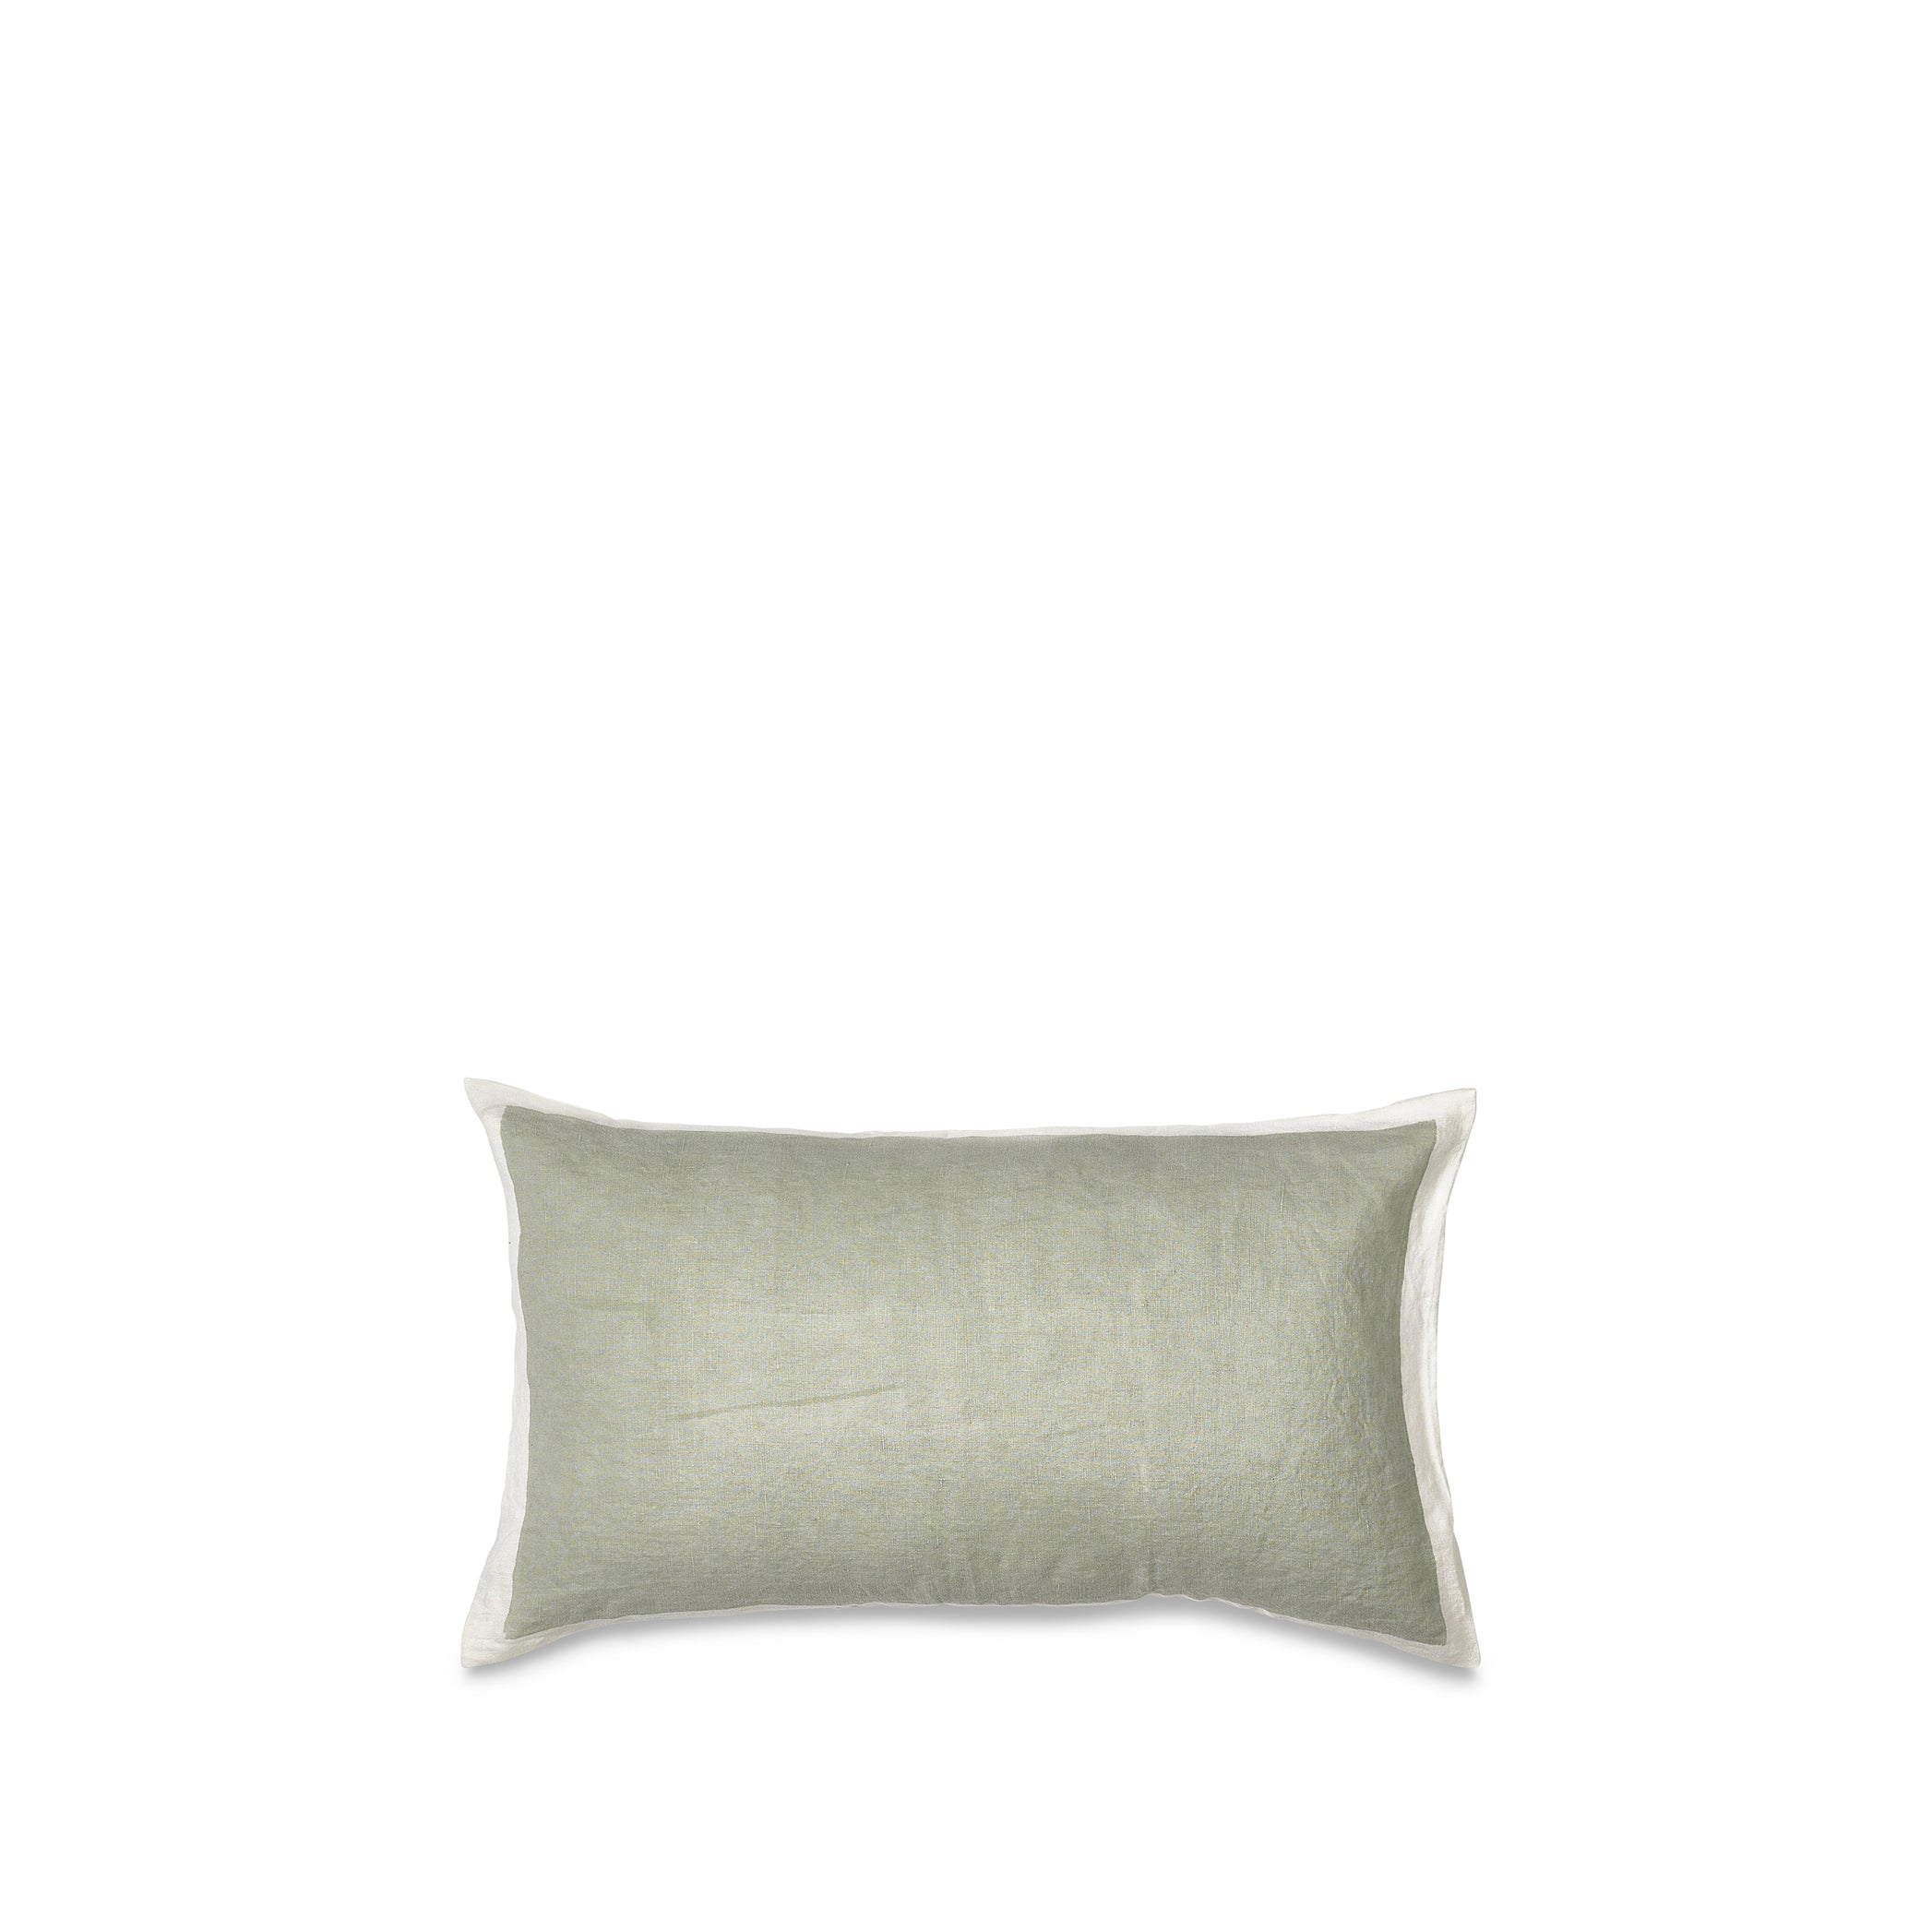 Hand Painted Linen Cushion Cover in Pale Green, 50cm x 30cm